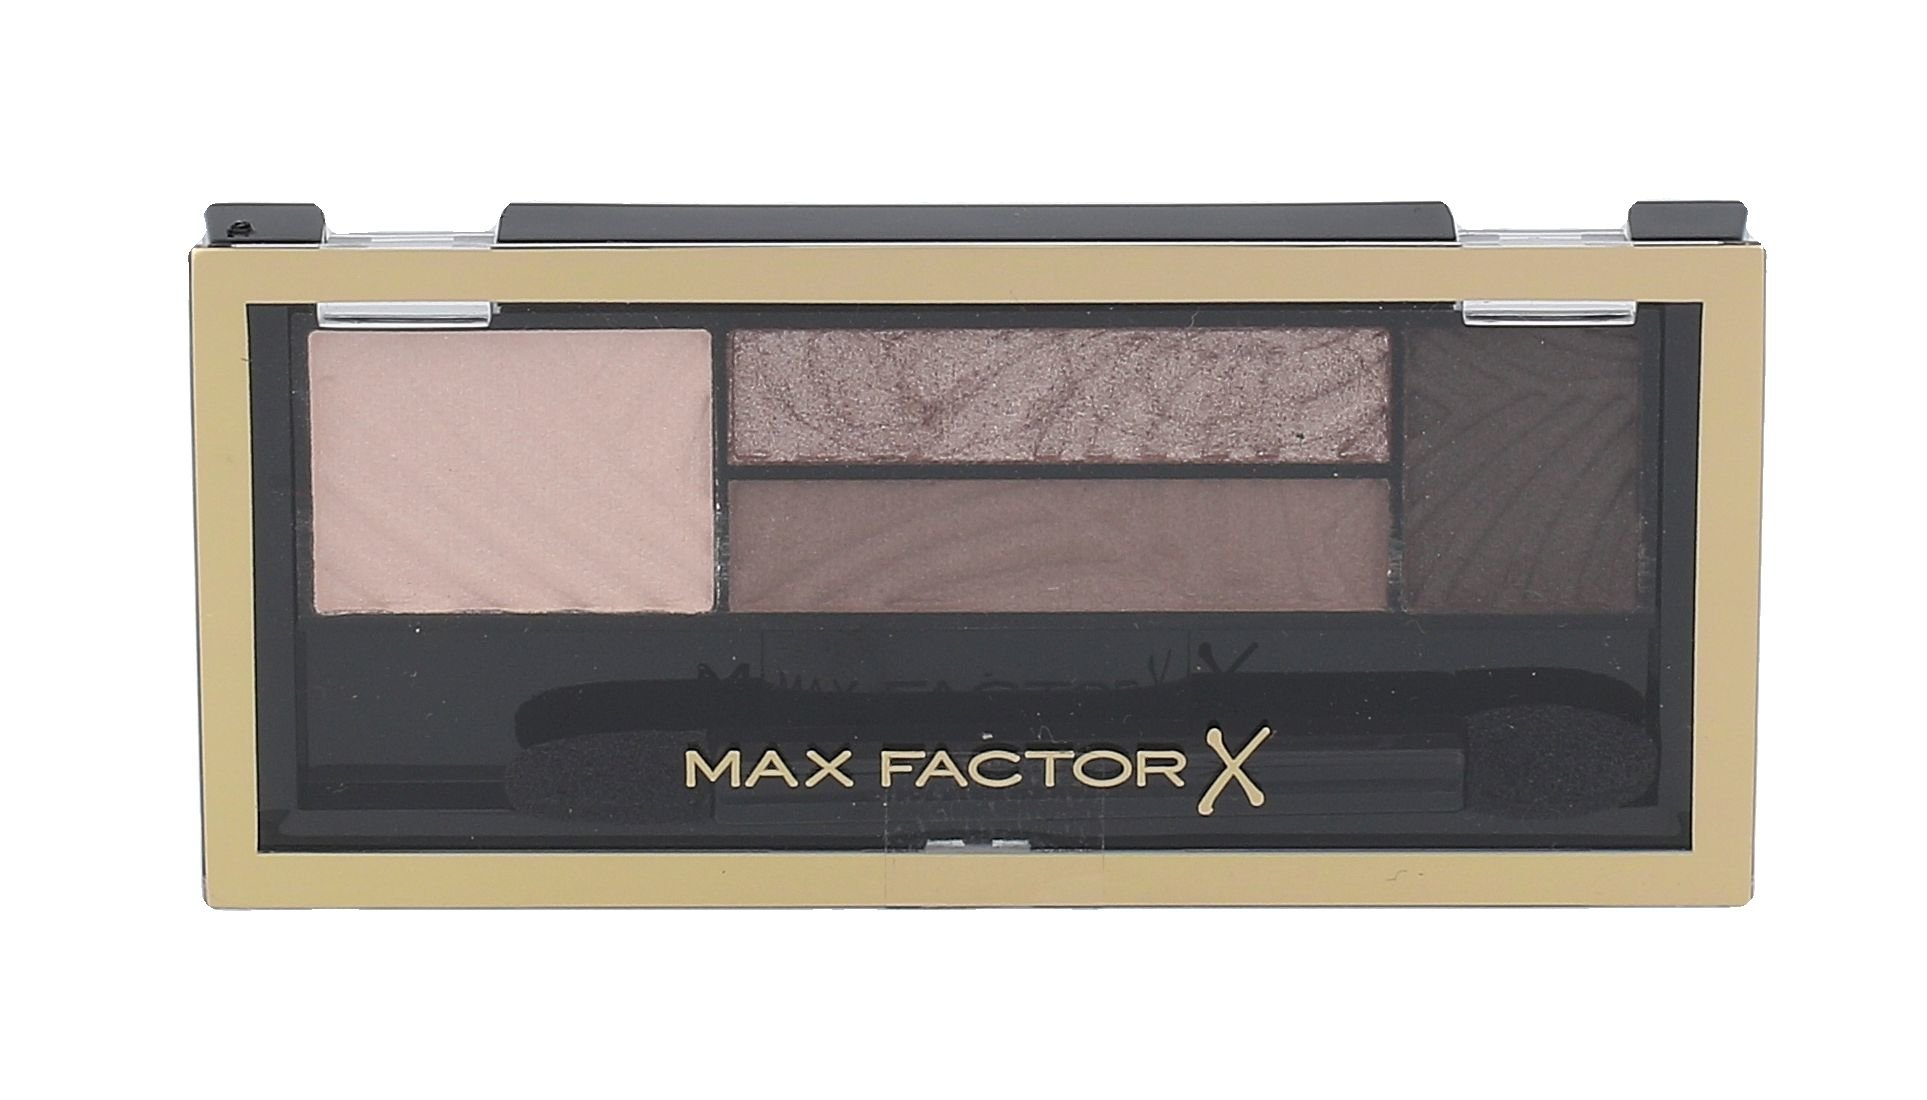 Max Factor Smokey Eye Drama Cosmetic 1,8ml 01 Opulent Nudes